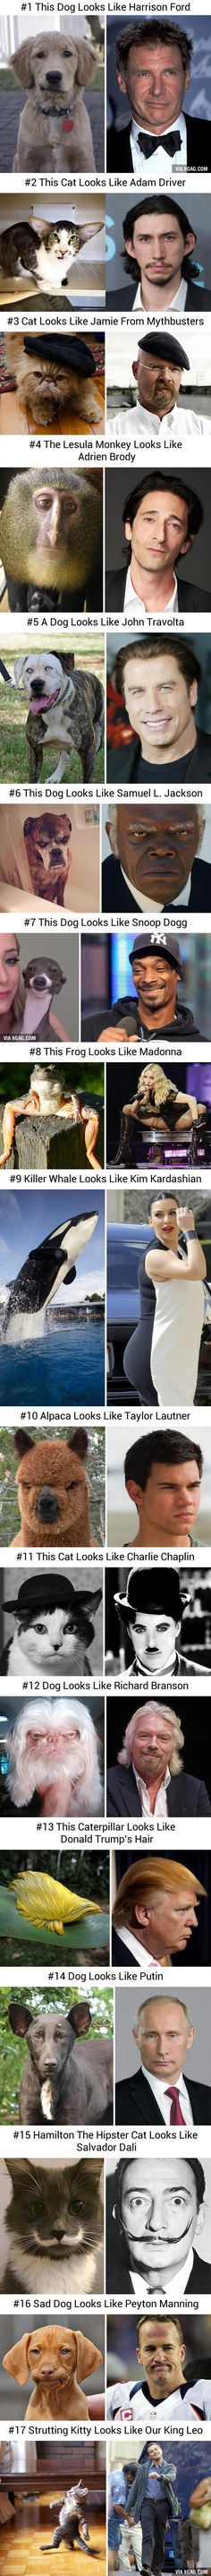 17 Best Look Like Pictures you ever seen: Animals vs Celebrities and Famous People - funny photo hilarious Animal Jokes, Funny Animal Memes, Funny Animal Pictures, Cute Funny Animals, Funny Cute, Really Funny, Funny Photos, Best Funny Pictures, Funny Jokes